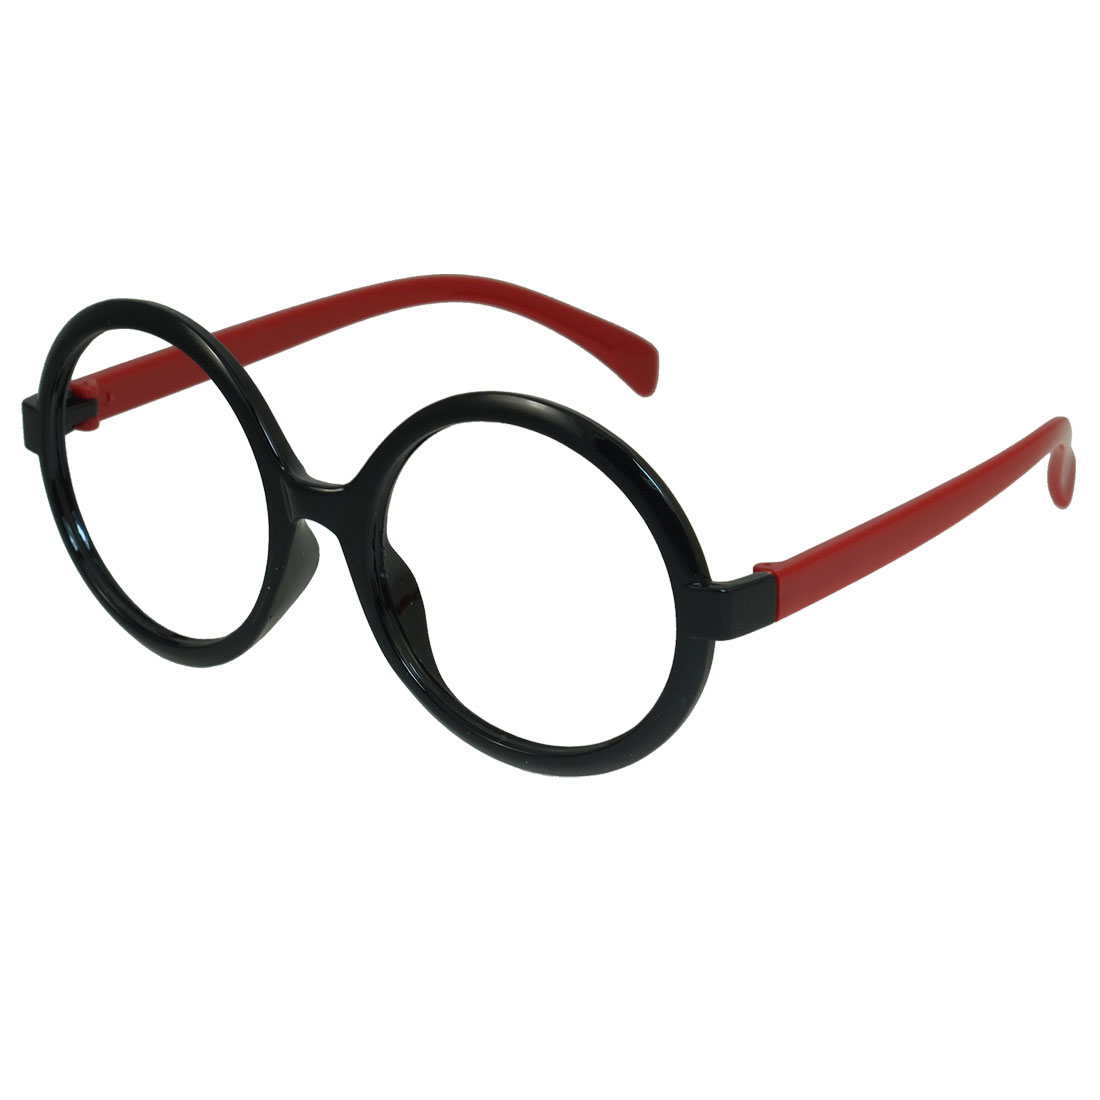 Red Plastic Arm Full Rim Round Shaped Spectacles Glasses Eyeglasses Frame